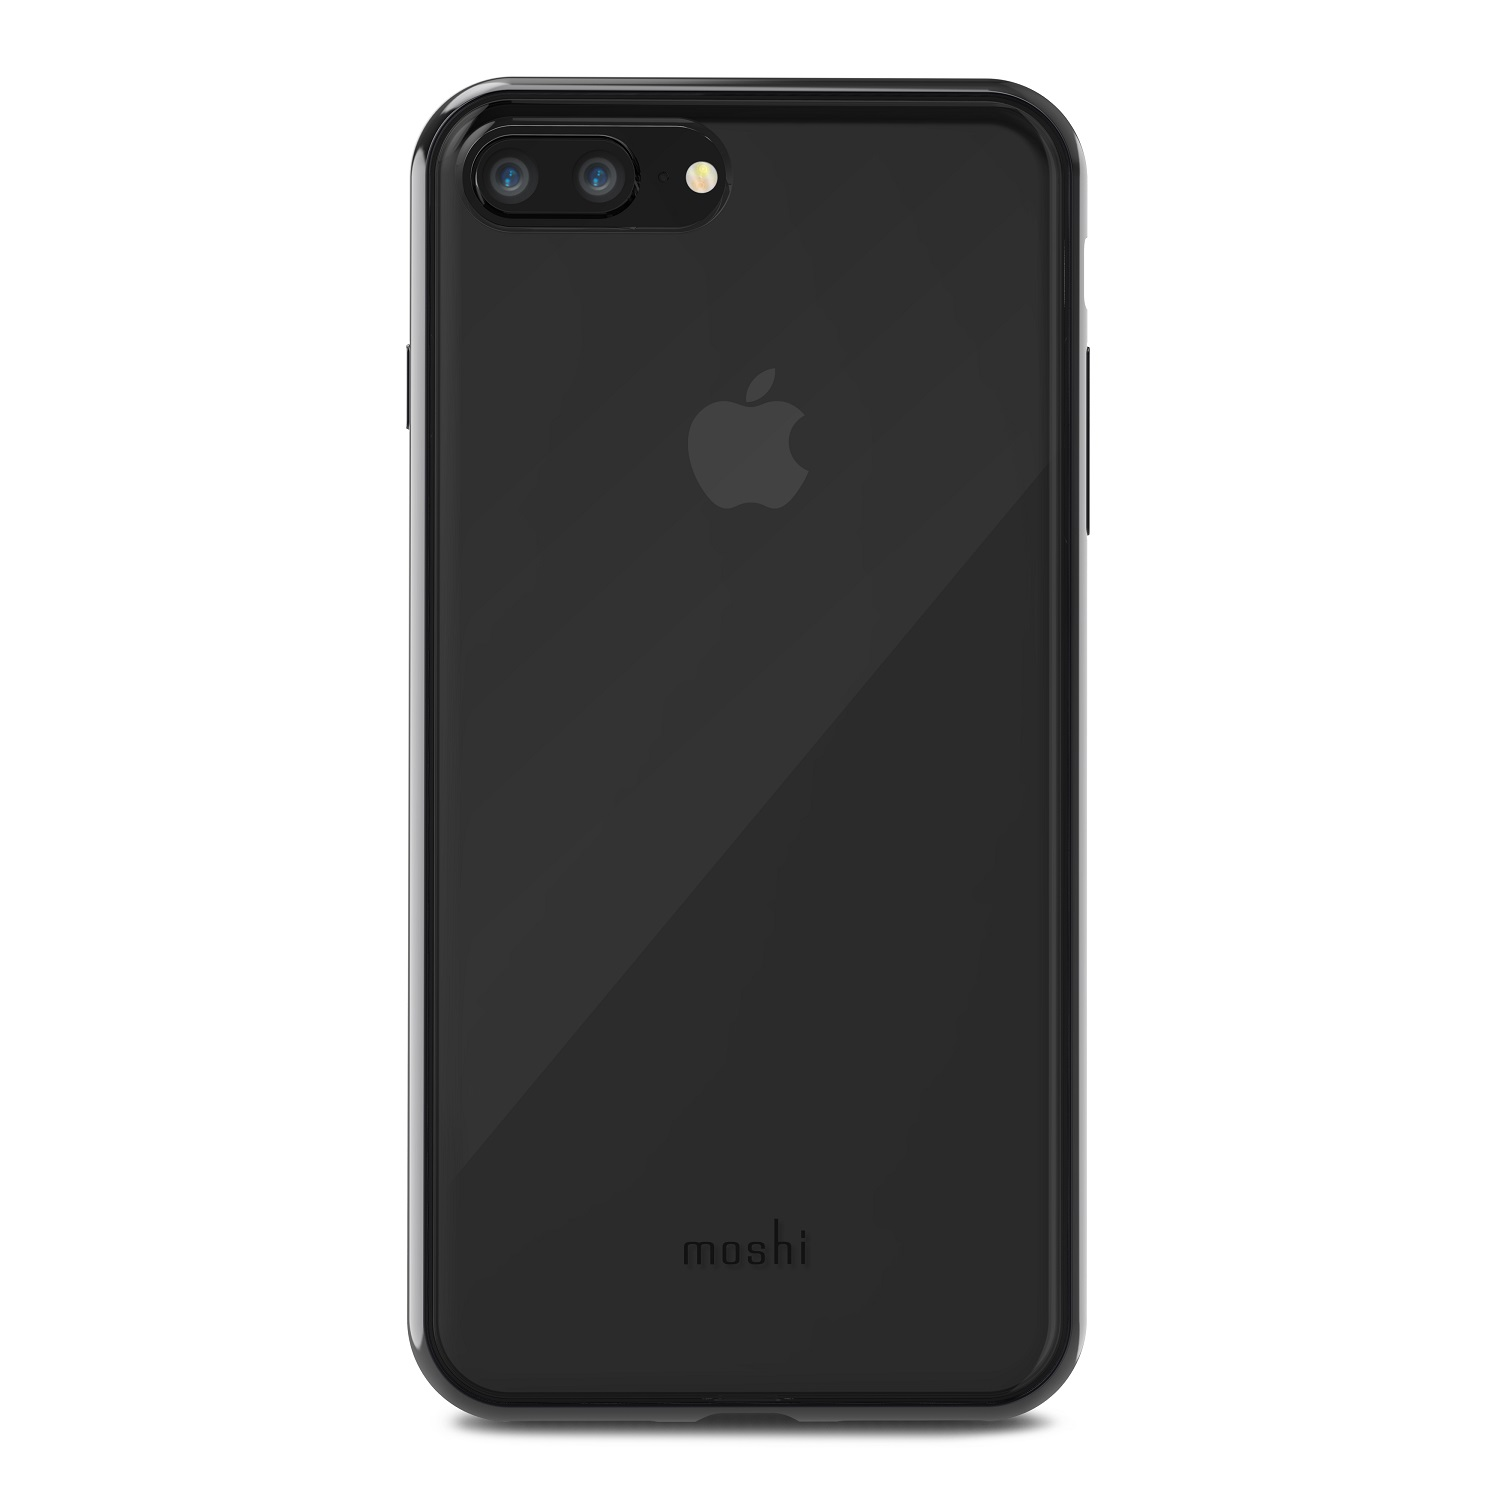 Moshi Vitros Case for iPhone 8 Plus/7 Plus